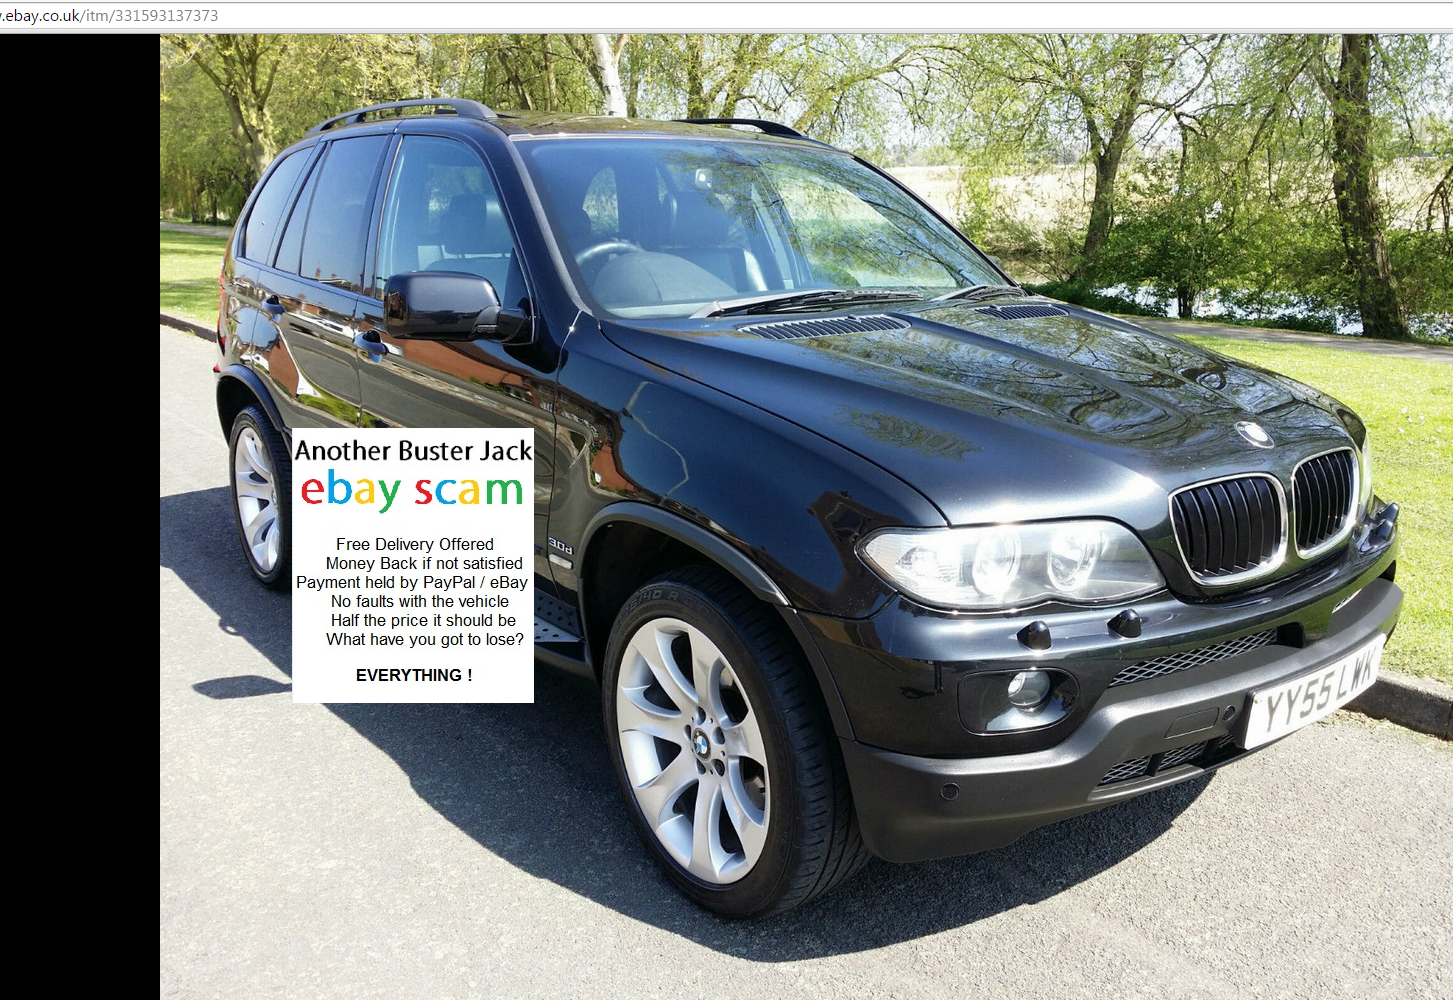 ebay scam 2005 bmw x5 exclusive edition yy55lwk. Black Bedroom Furniture Sets. Home Design Ideas